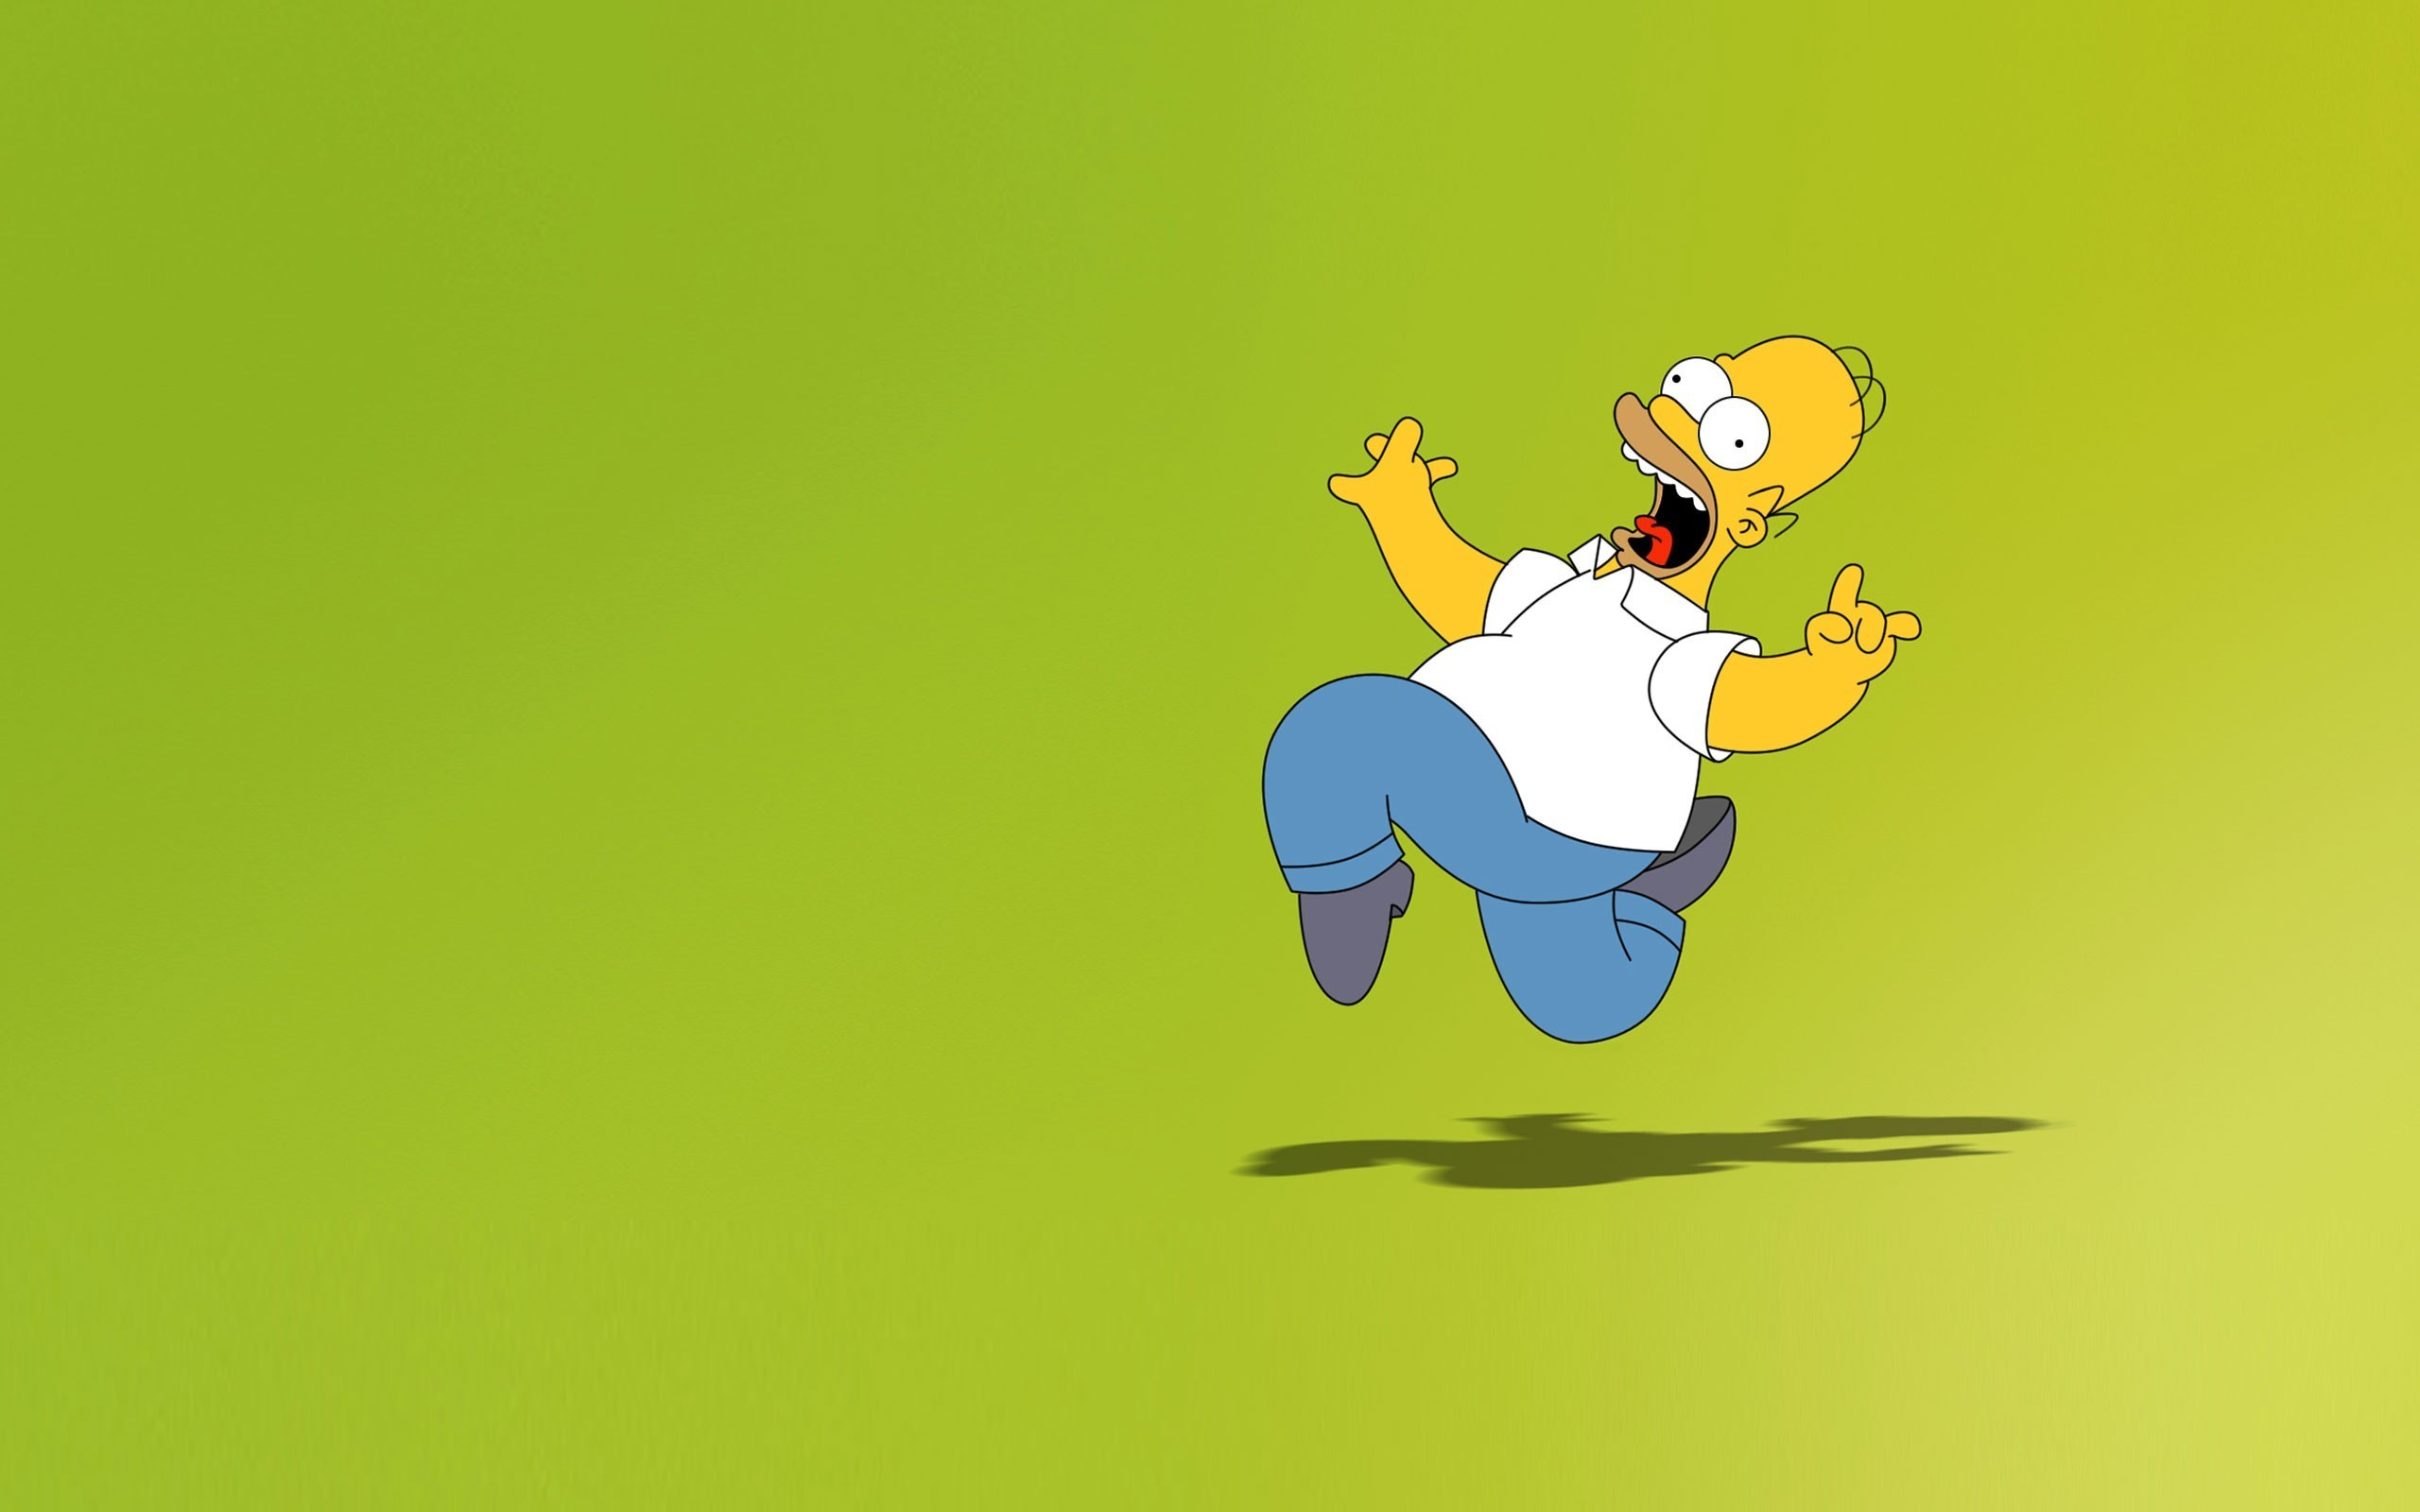 2560x1600 Simpsons Background Wallpapers Simpsons Wallpaper Background Simpsons . Download · The Simpsons Wallpaper ...